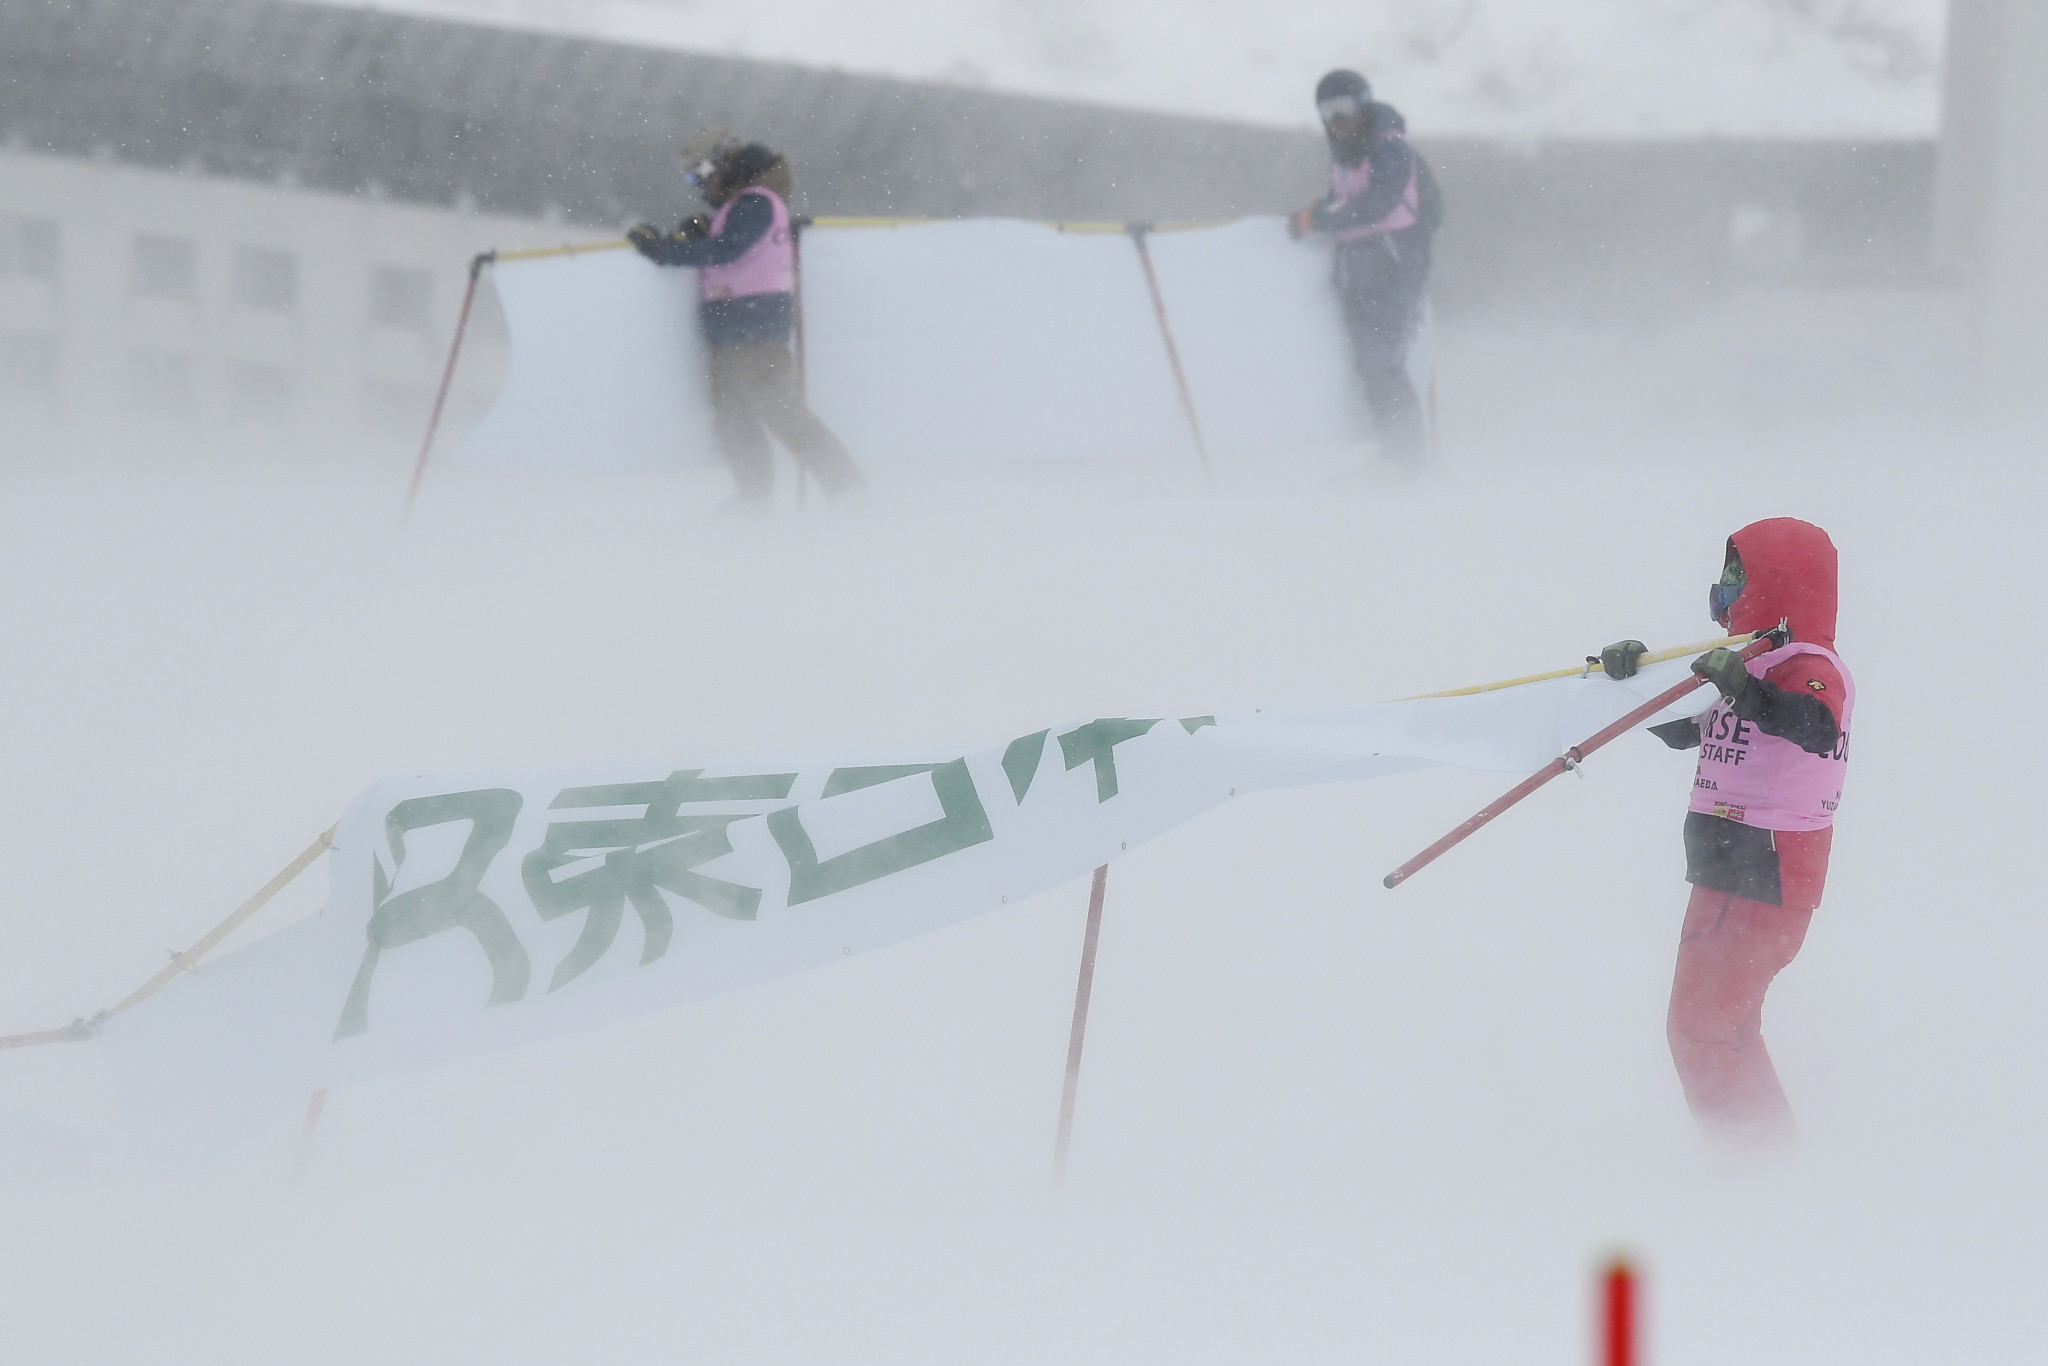 Alpine Skiing World Cup in Naeba cancelled due to high winds